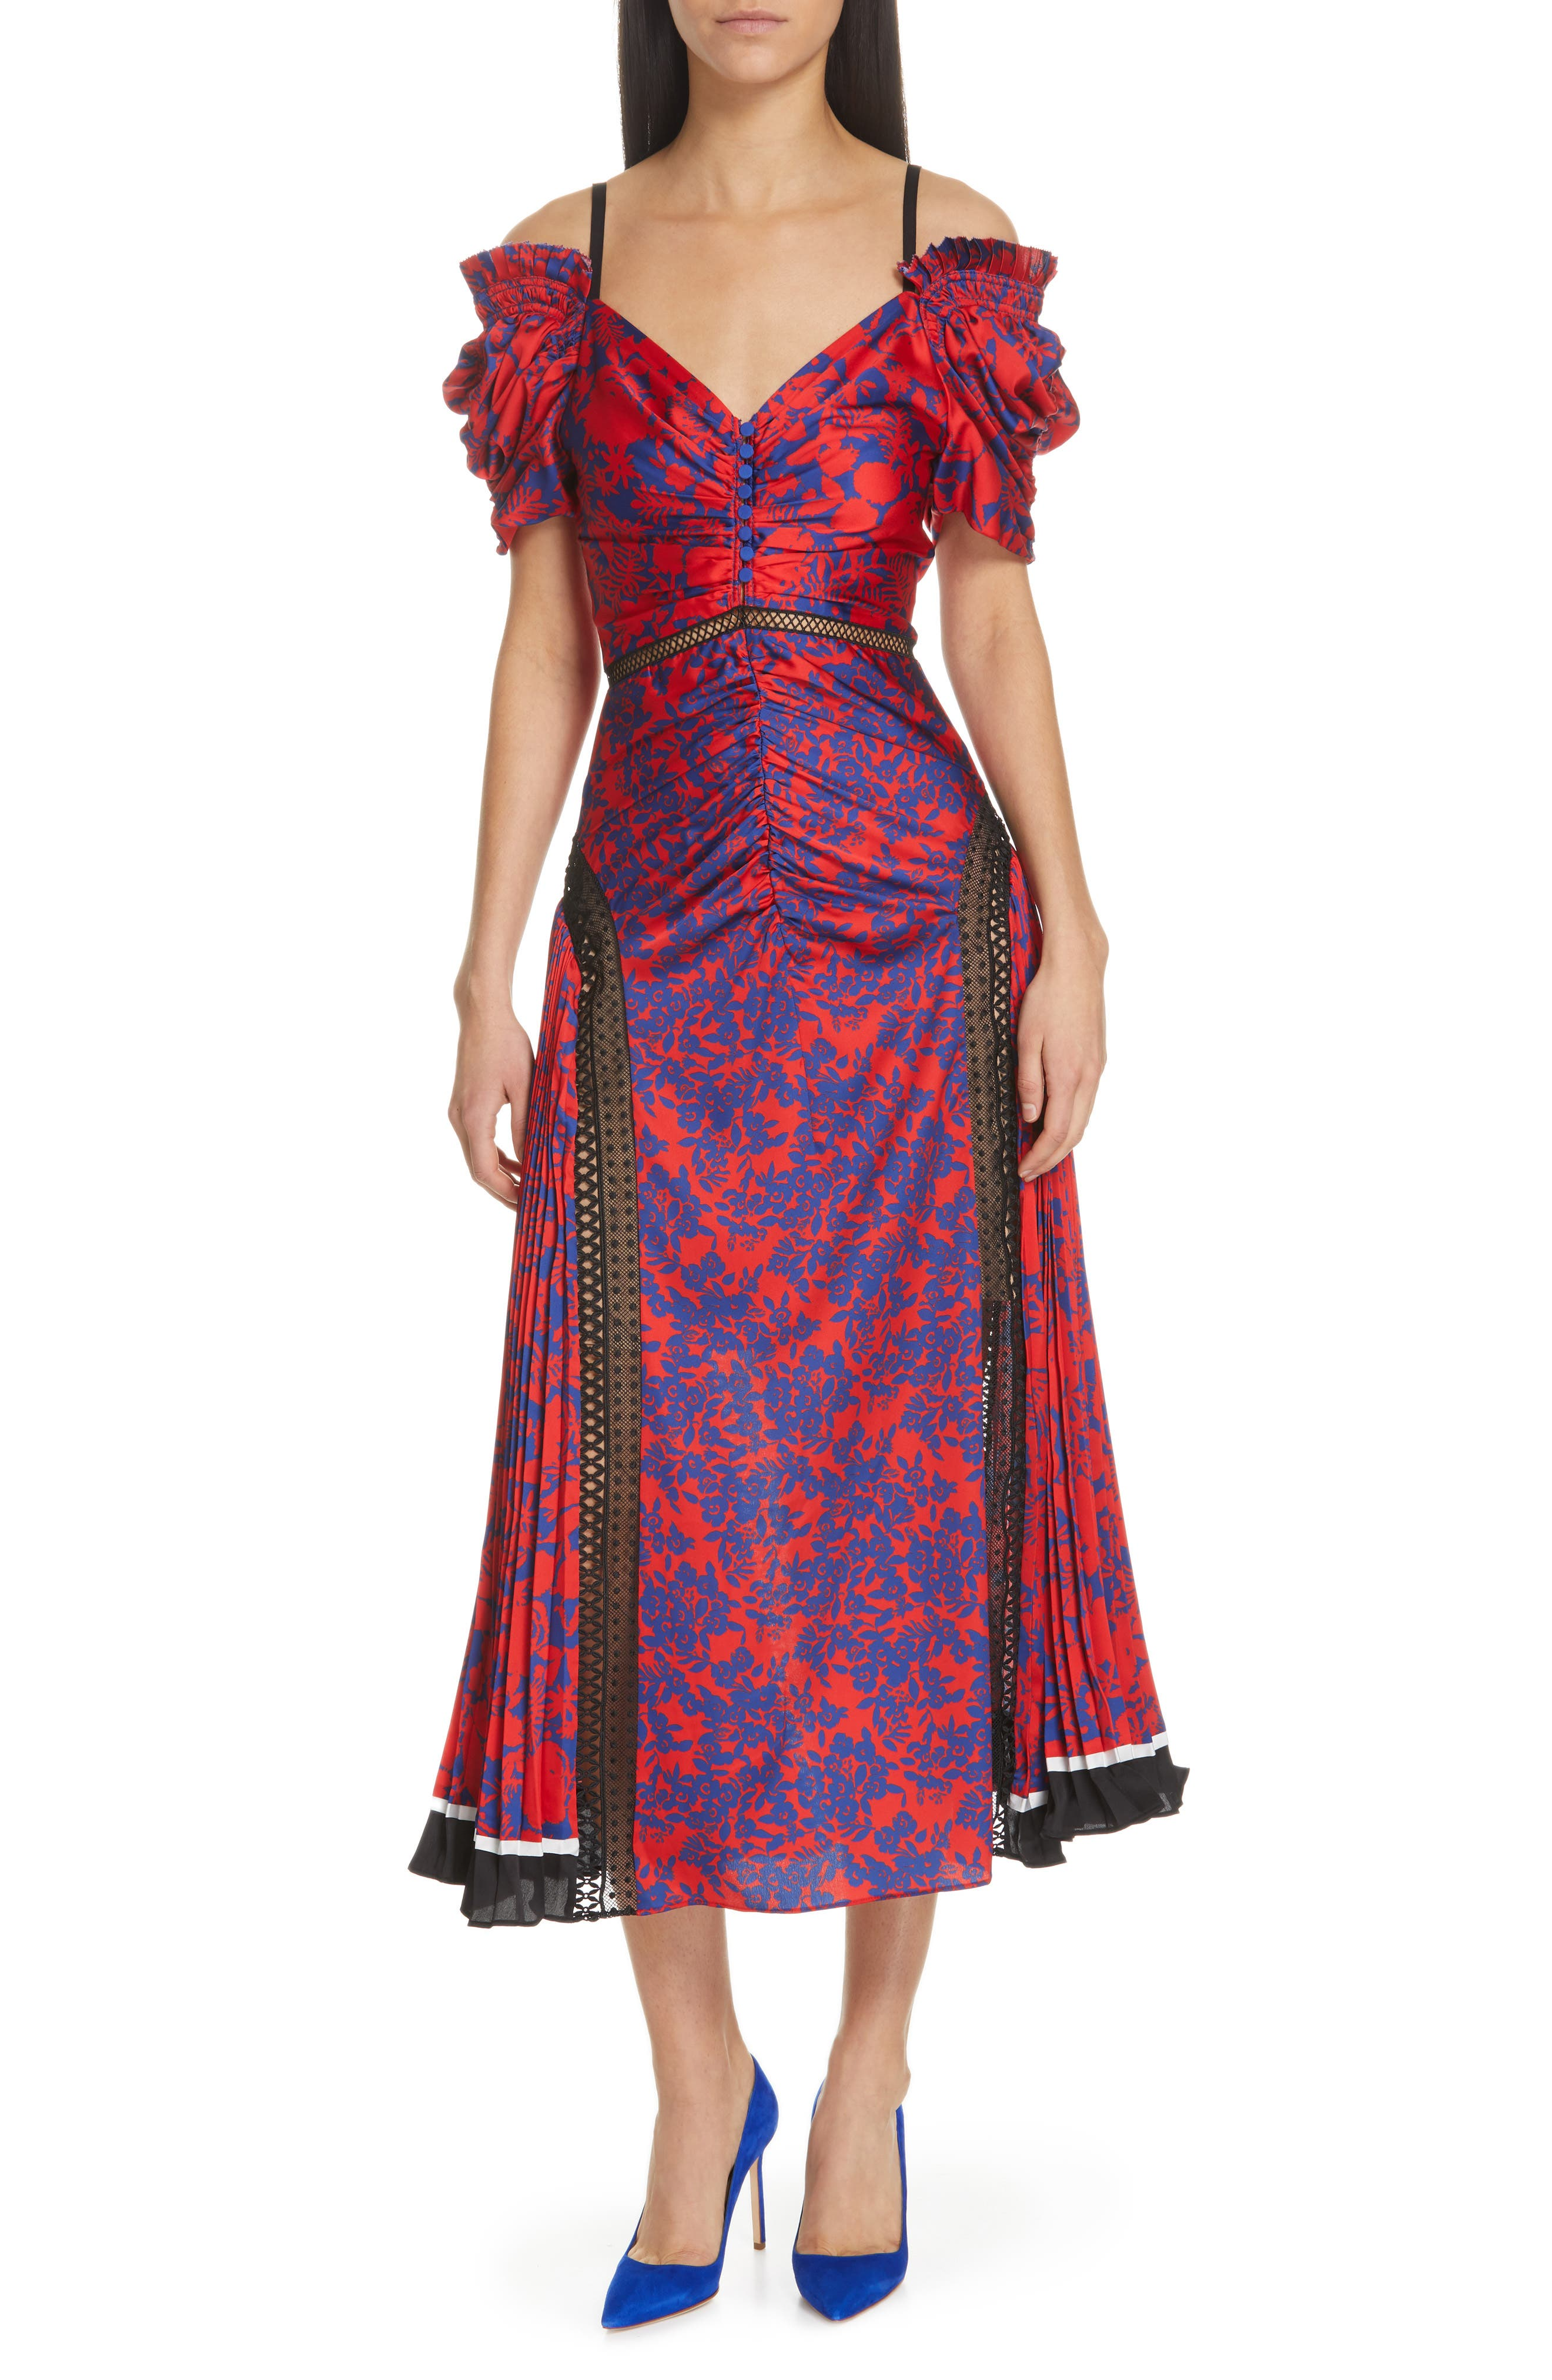 Self-Portrait Ruched & Pleated Floral Print Midi Dress, Red